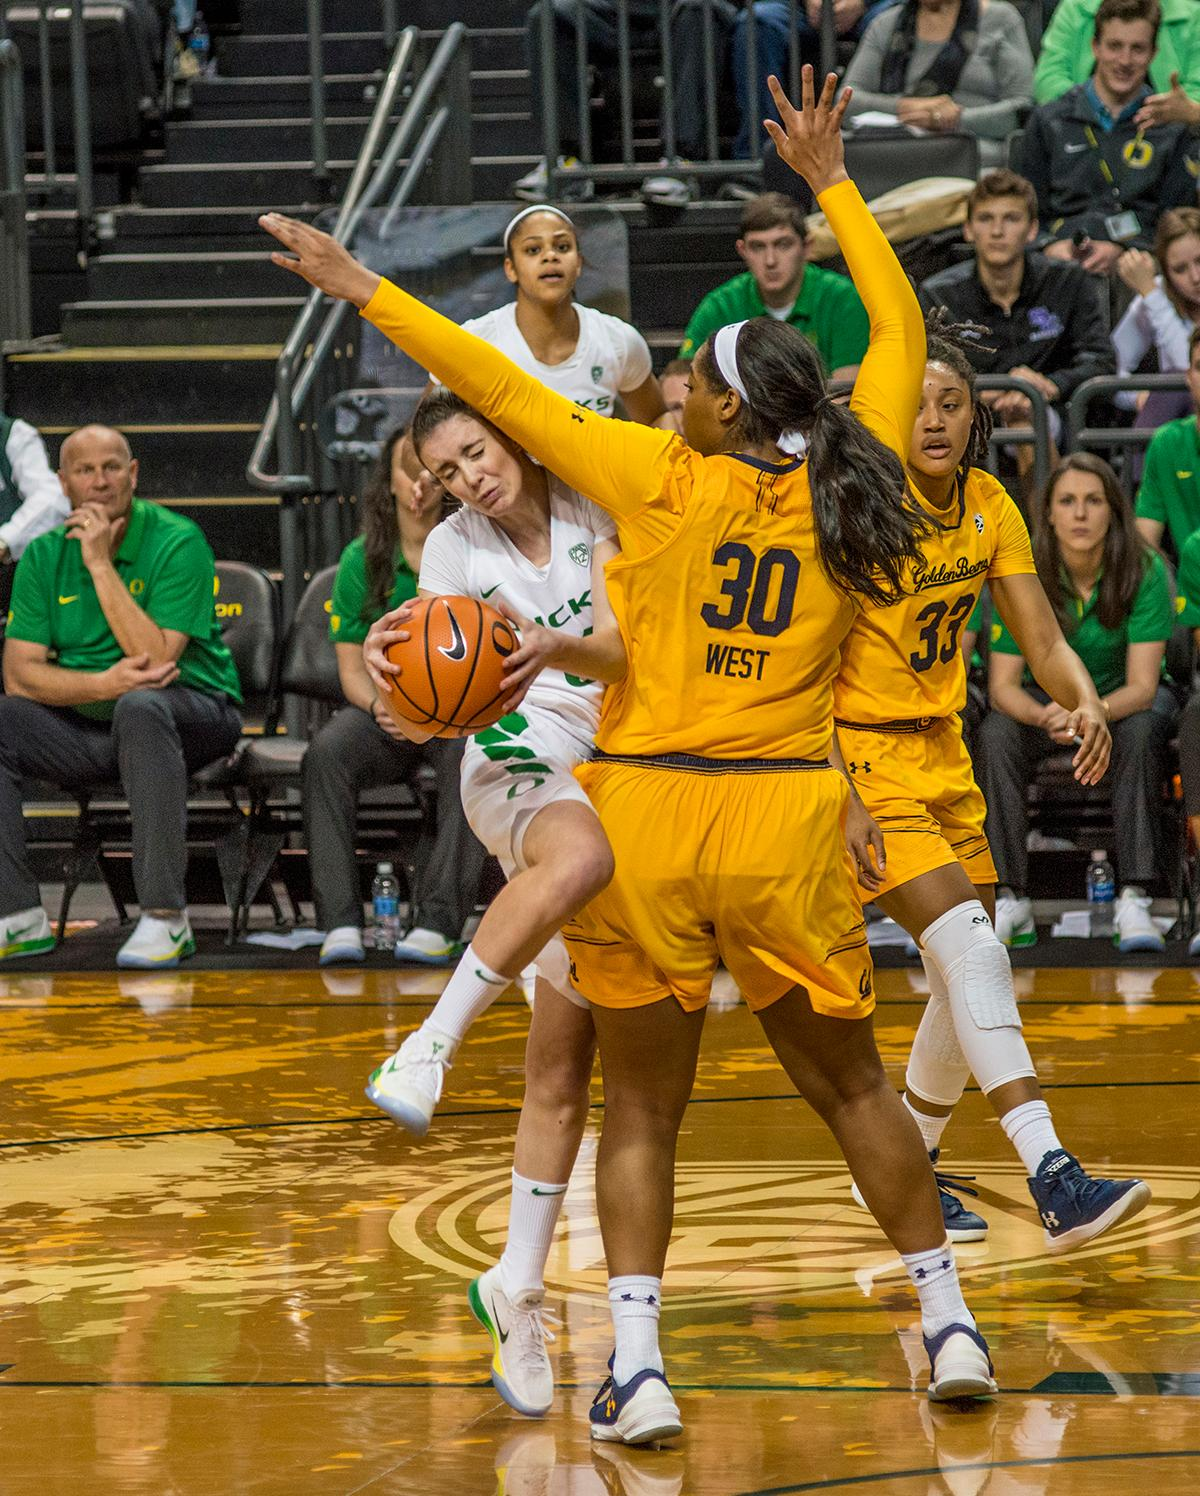 Oregon Ducks Aina Ayuso (#31, with ball) gets blocked by Cal Golden Bears CJ West (#30). The Oregon Ducks women defeated the Cal Bears 91-54 in Matthew Knight Arena Saturday evening. The Ducks had three players in double digits: Sabrina Ionescu with 28 points; Ruthy Hebard with 18 points; and Satou Sabally with 10 points. The Ducks now stand at 10-1 in conference play and Cal drops to 6-5. Photo by Dan Morrison, Oregon News Lab